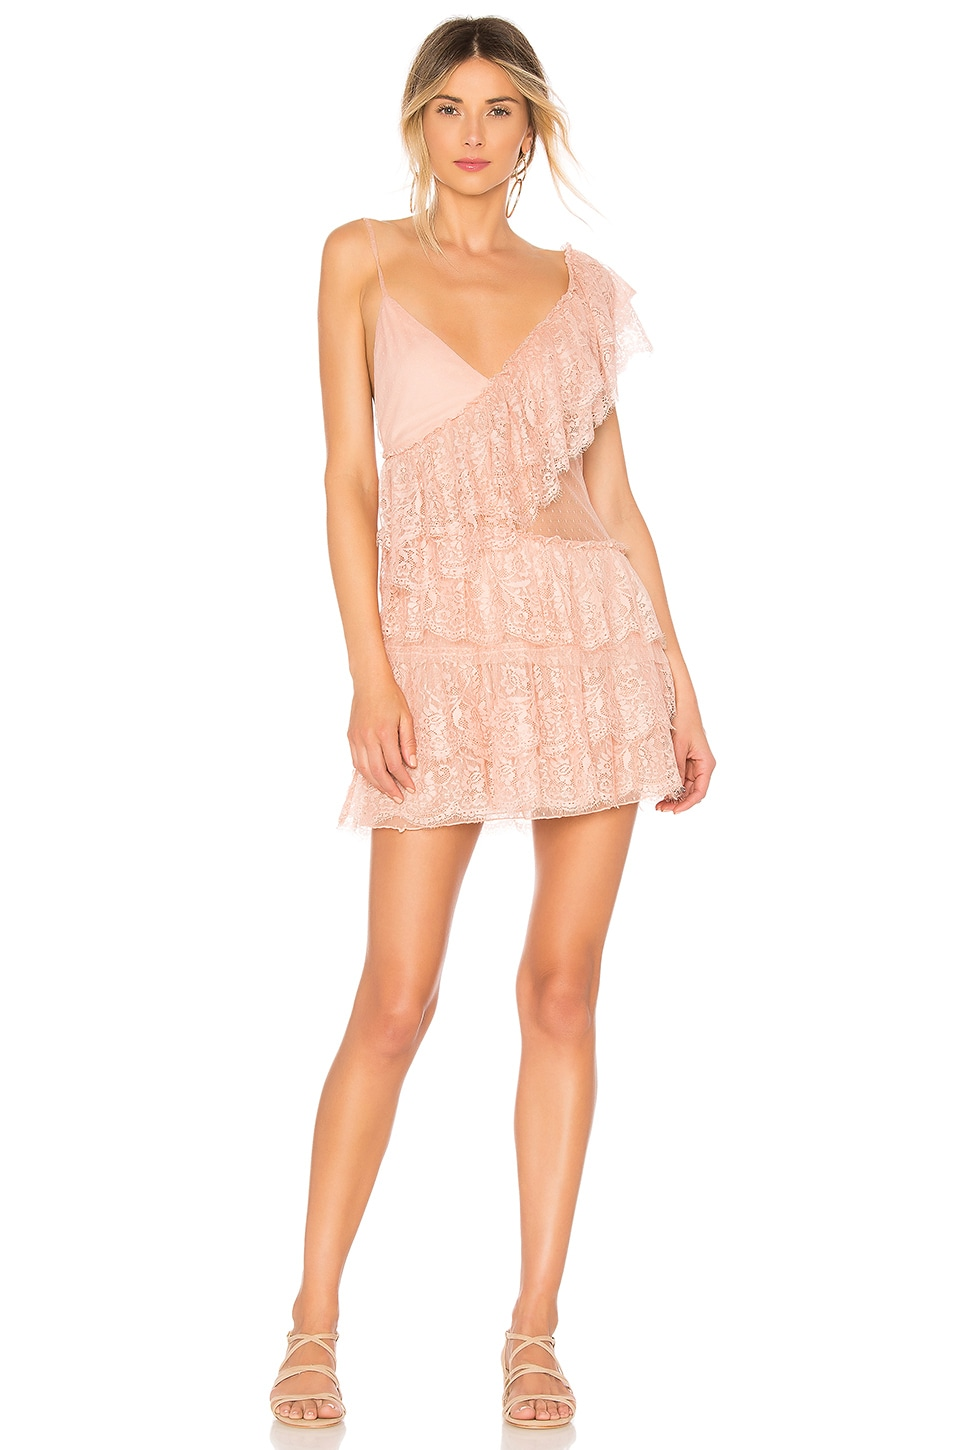 House of Harlow 1960 x REVOLVE Pauline Dress in Rose